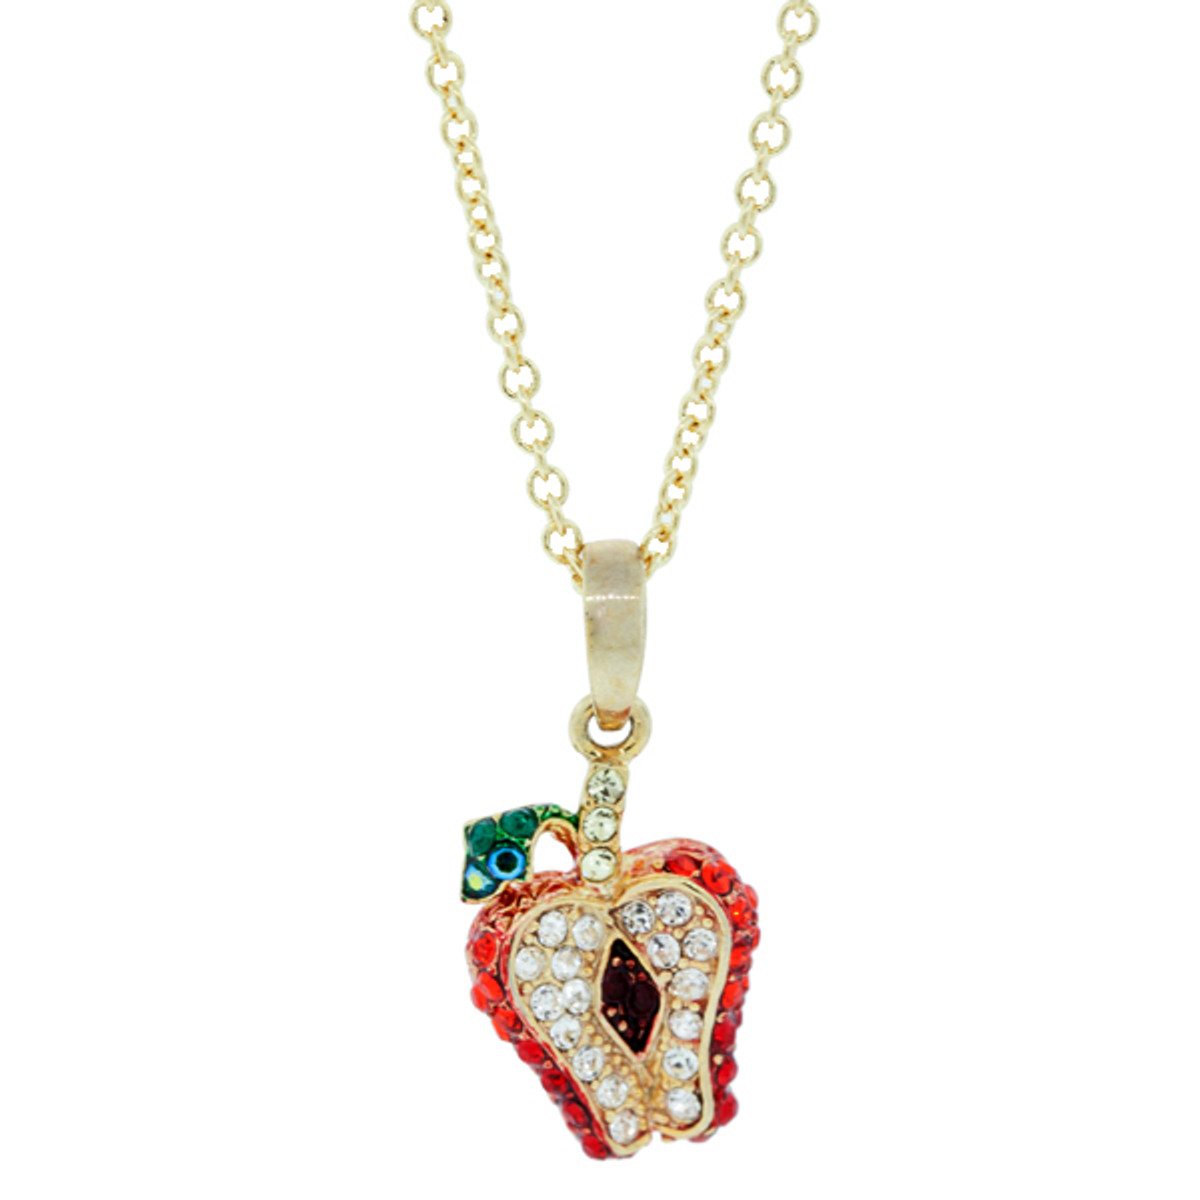 A Special Tiny Apple Pendant Gold Necklace From Andrew Hamilton Crawford Jewelry